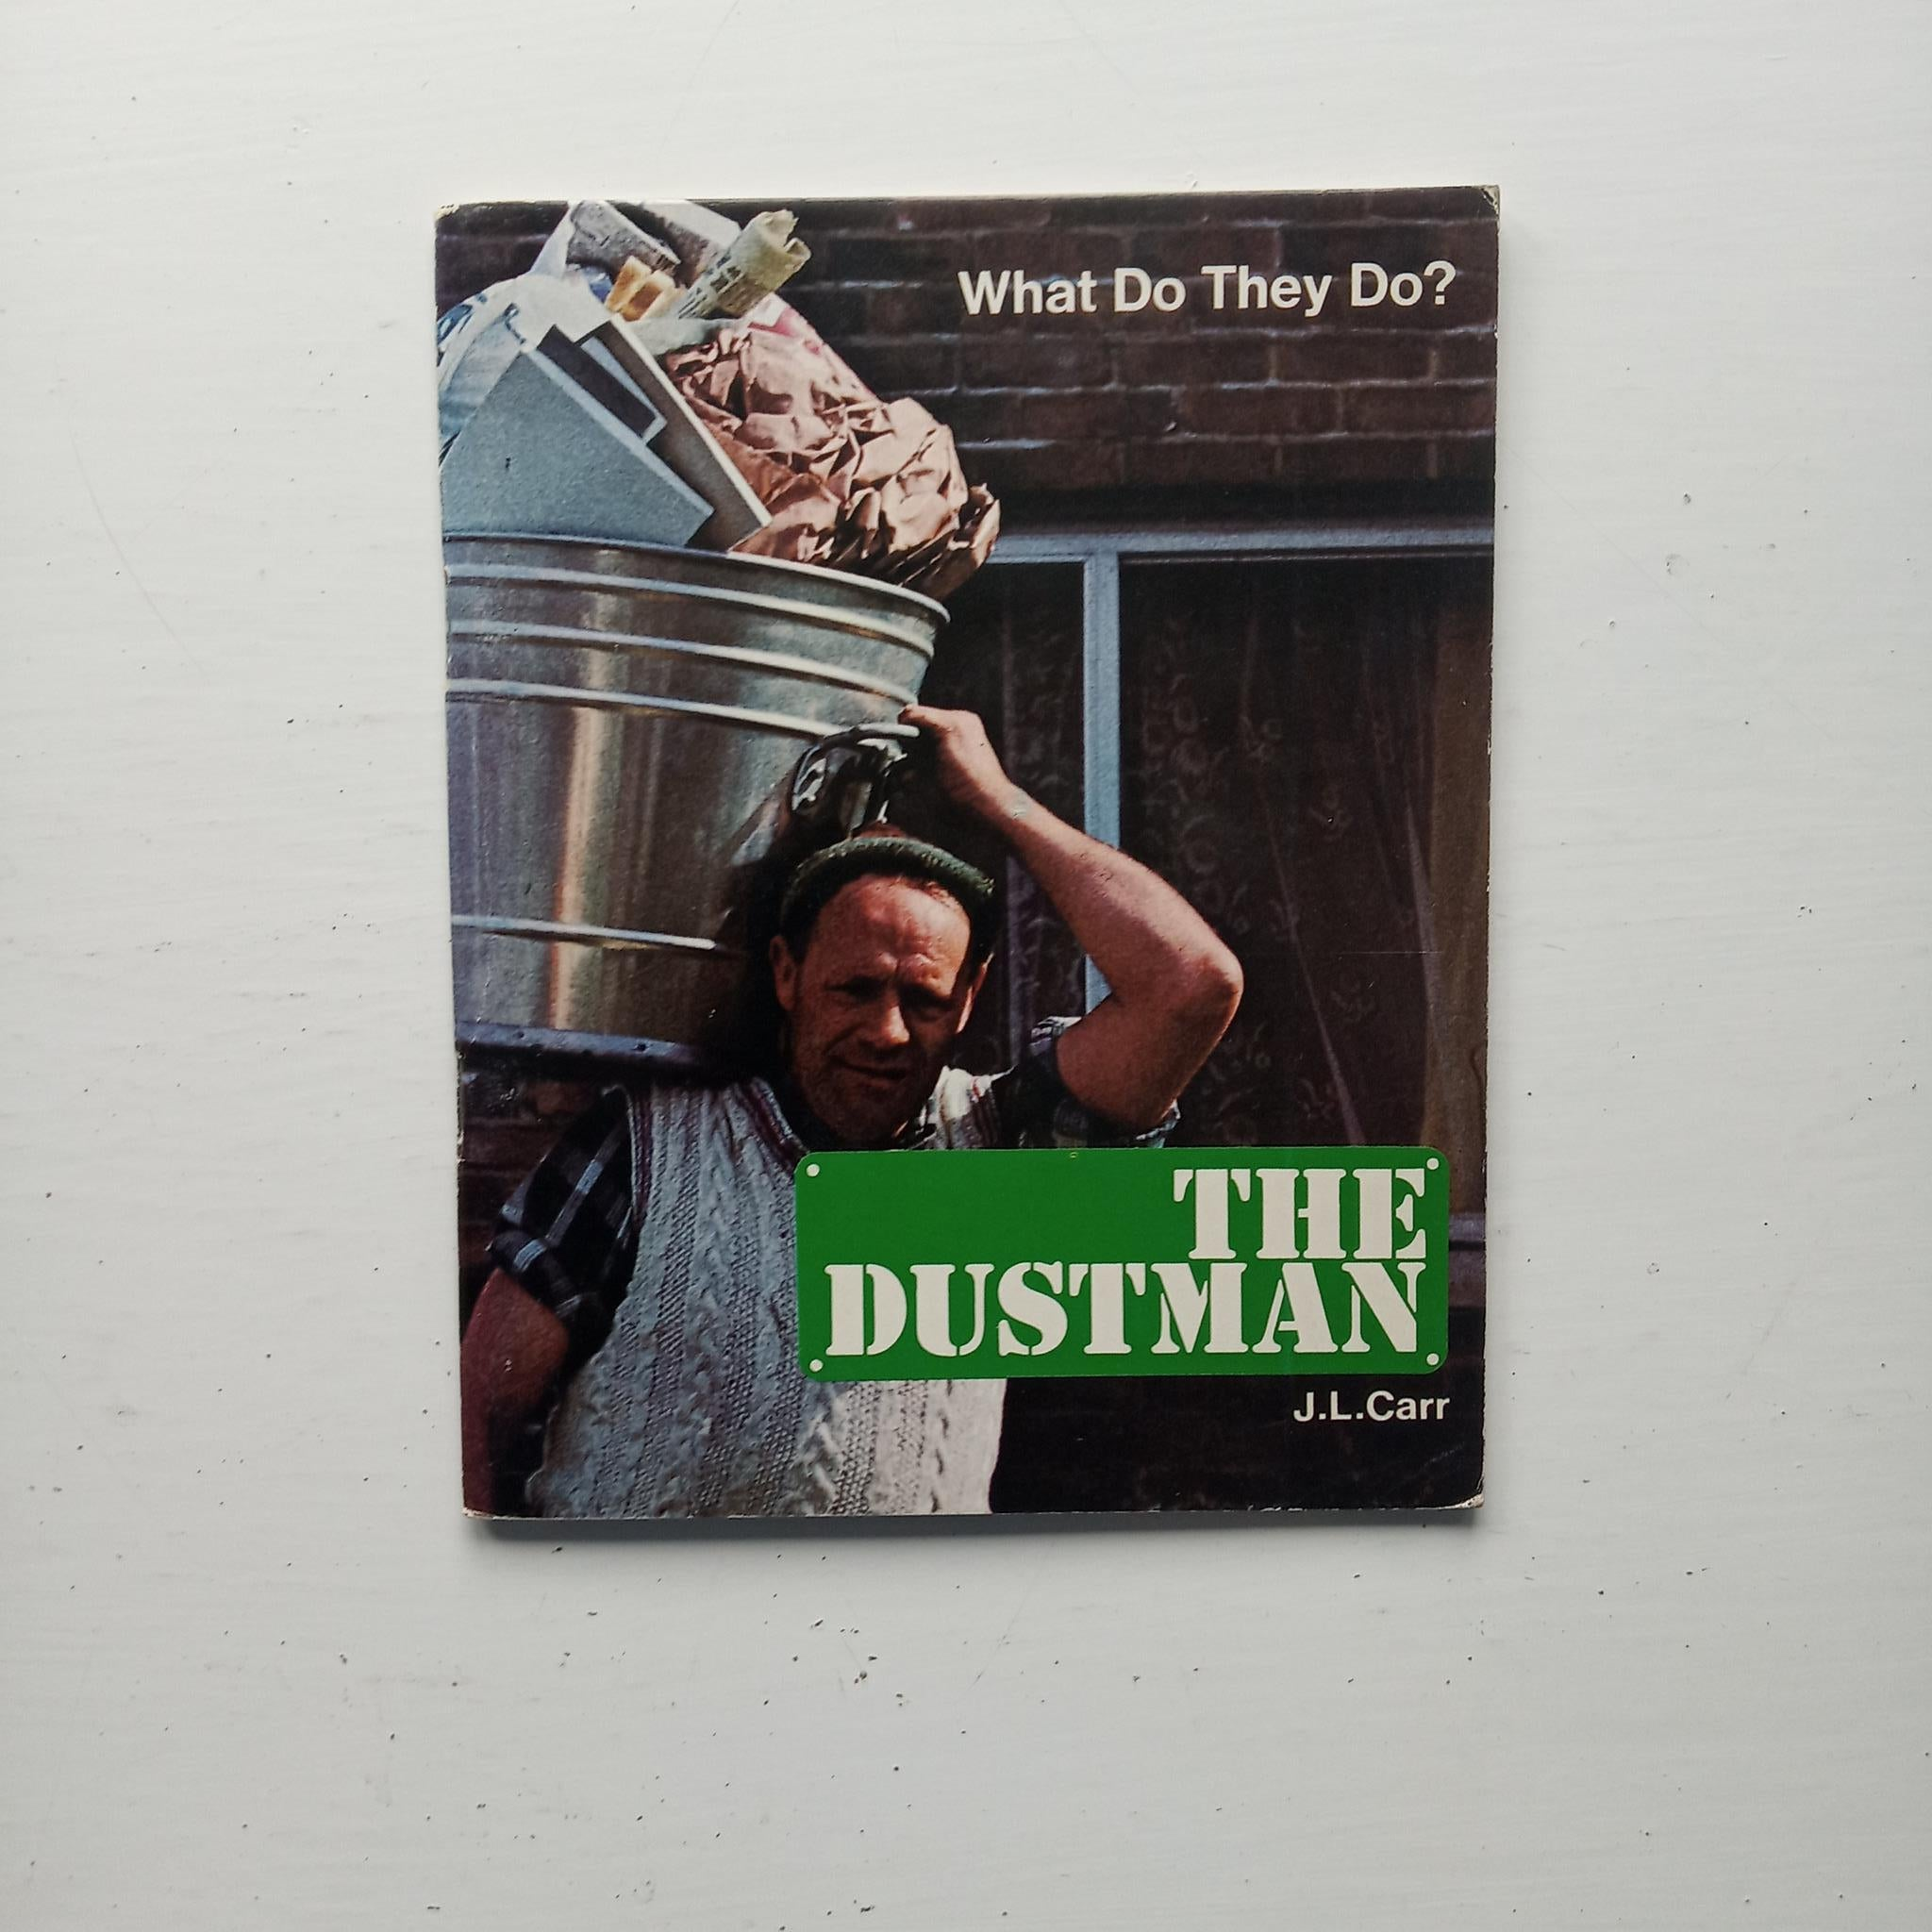 The Dustman by J.L. Carr